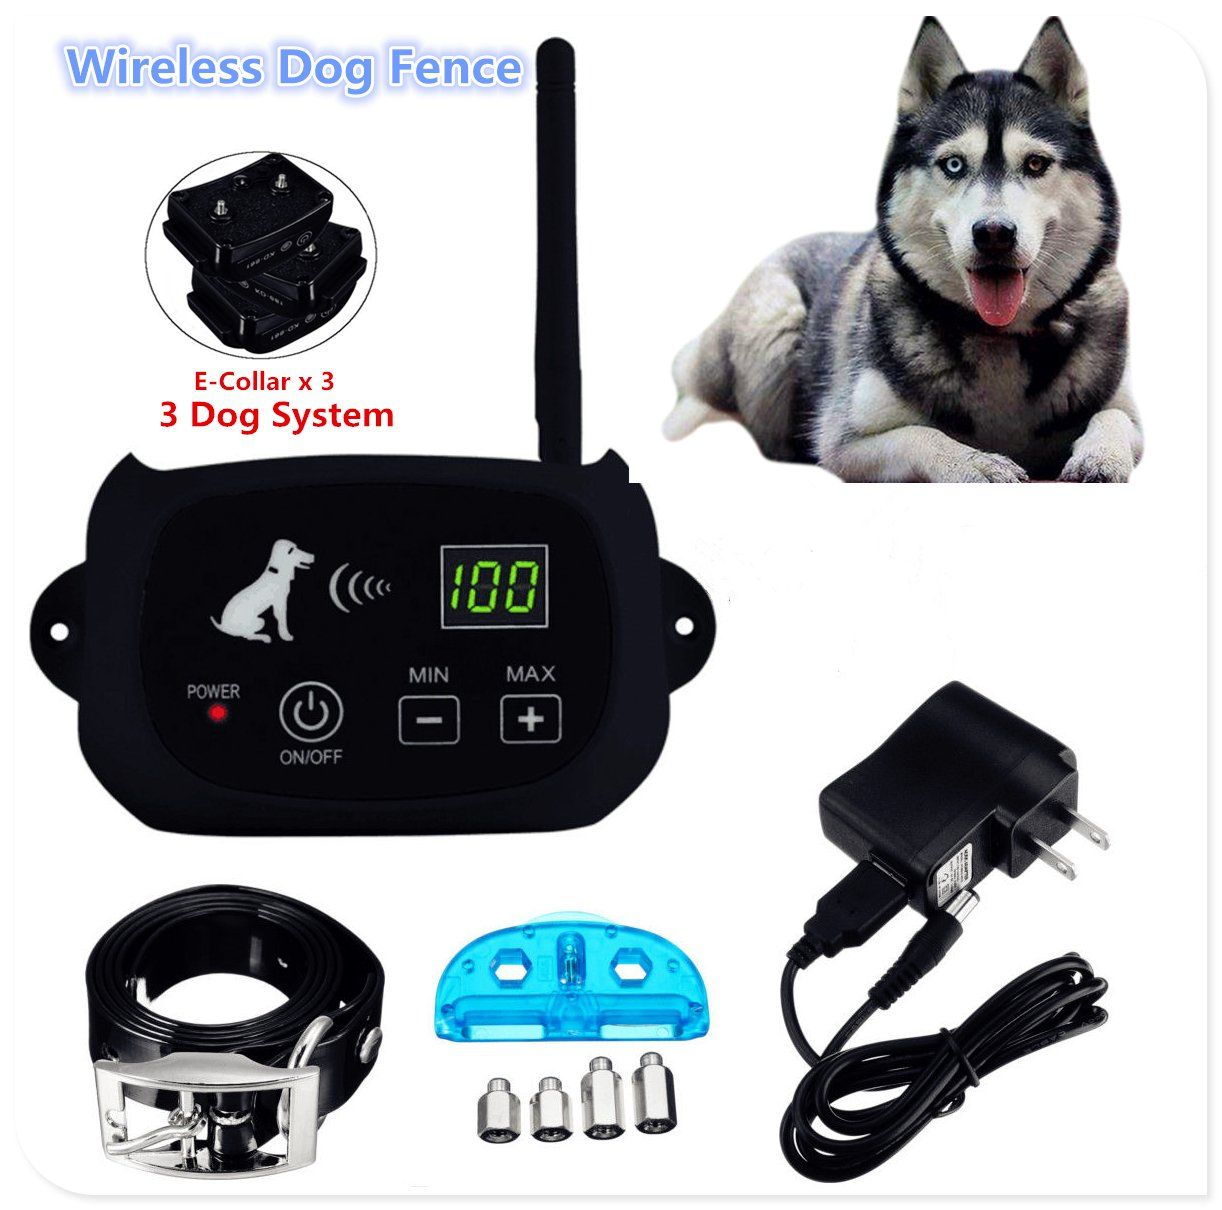 Jjjstore Wireless Dog Fence Electric Pet Containment System